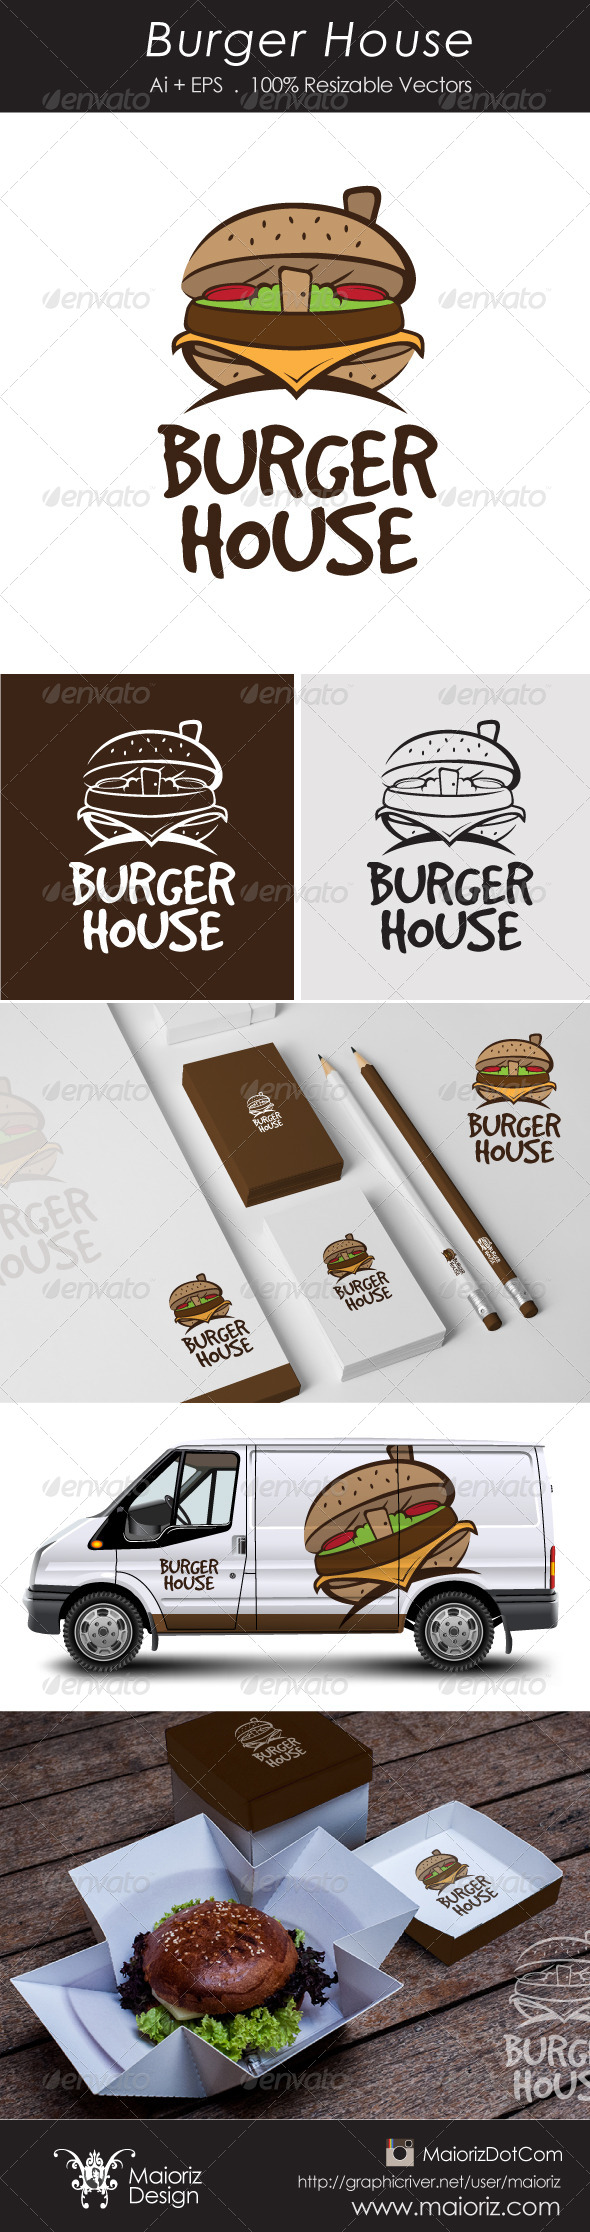 Burger House Logotype - Food Logo Templates